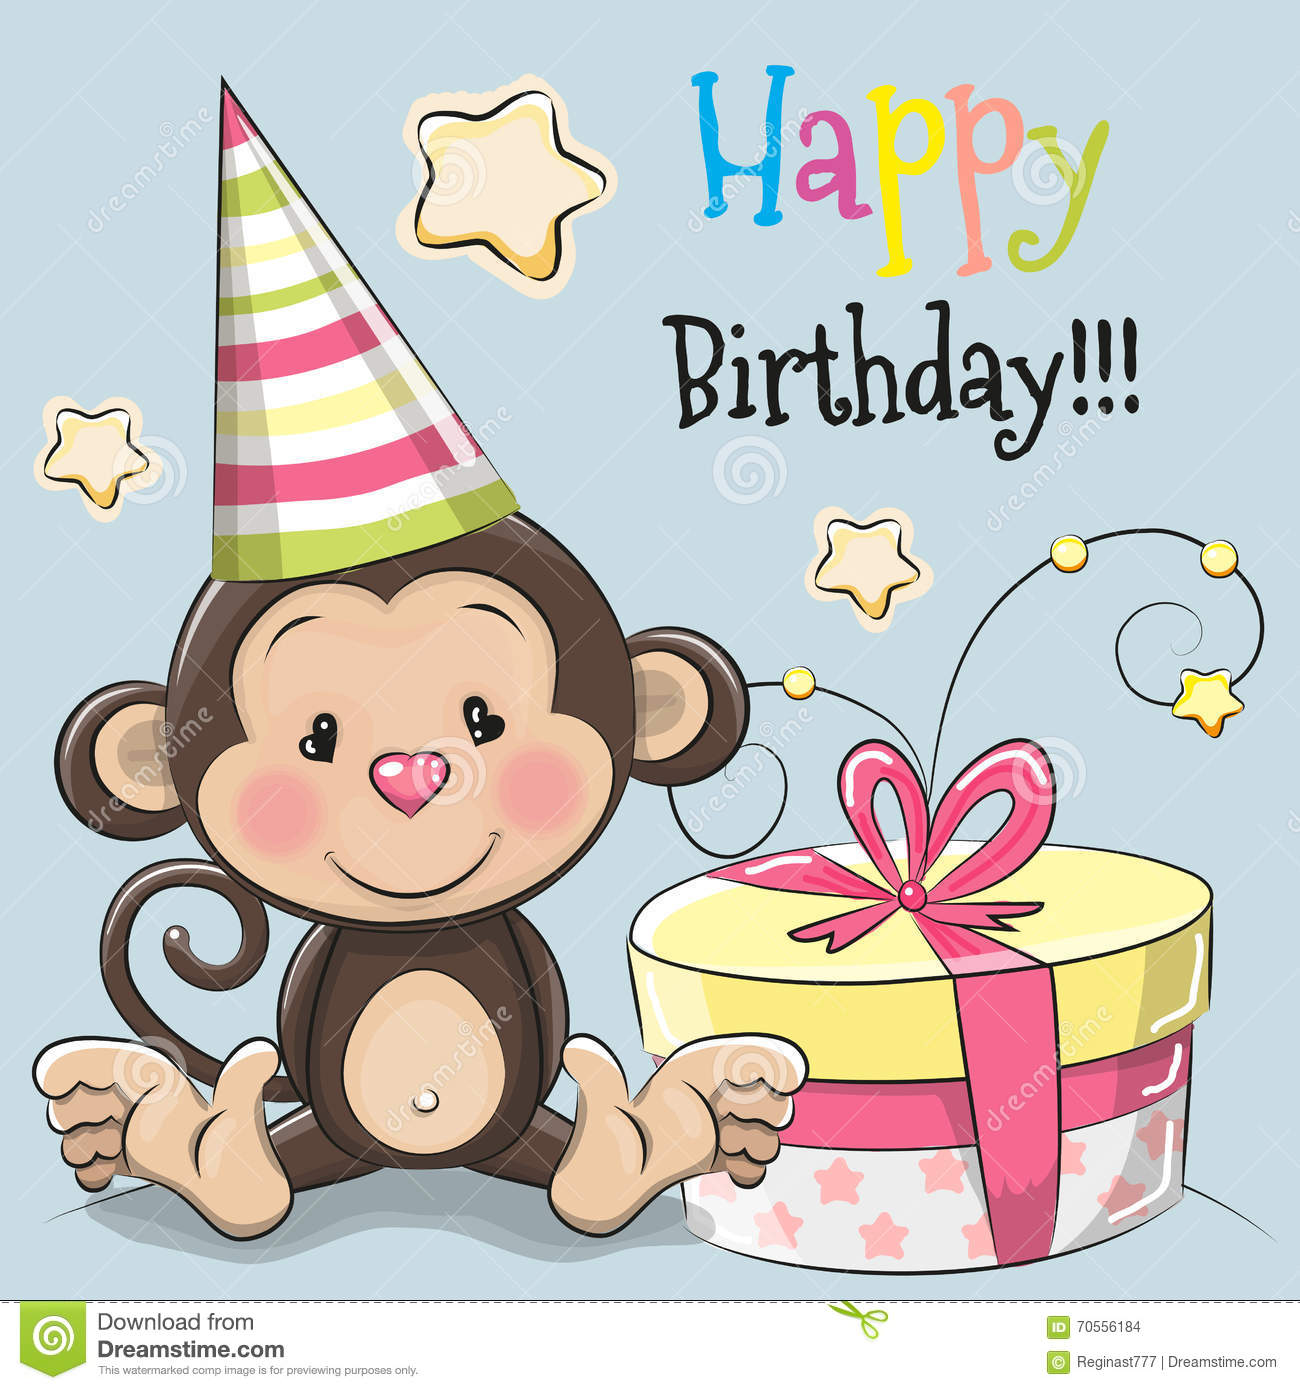 Monkey Animated Birthday Cards Pictures to Pin – Birthday Card Monkey